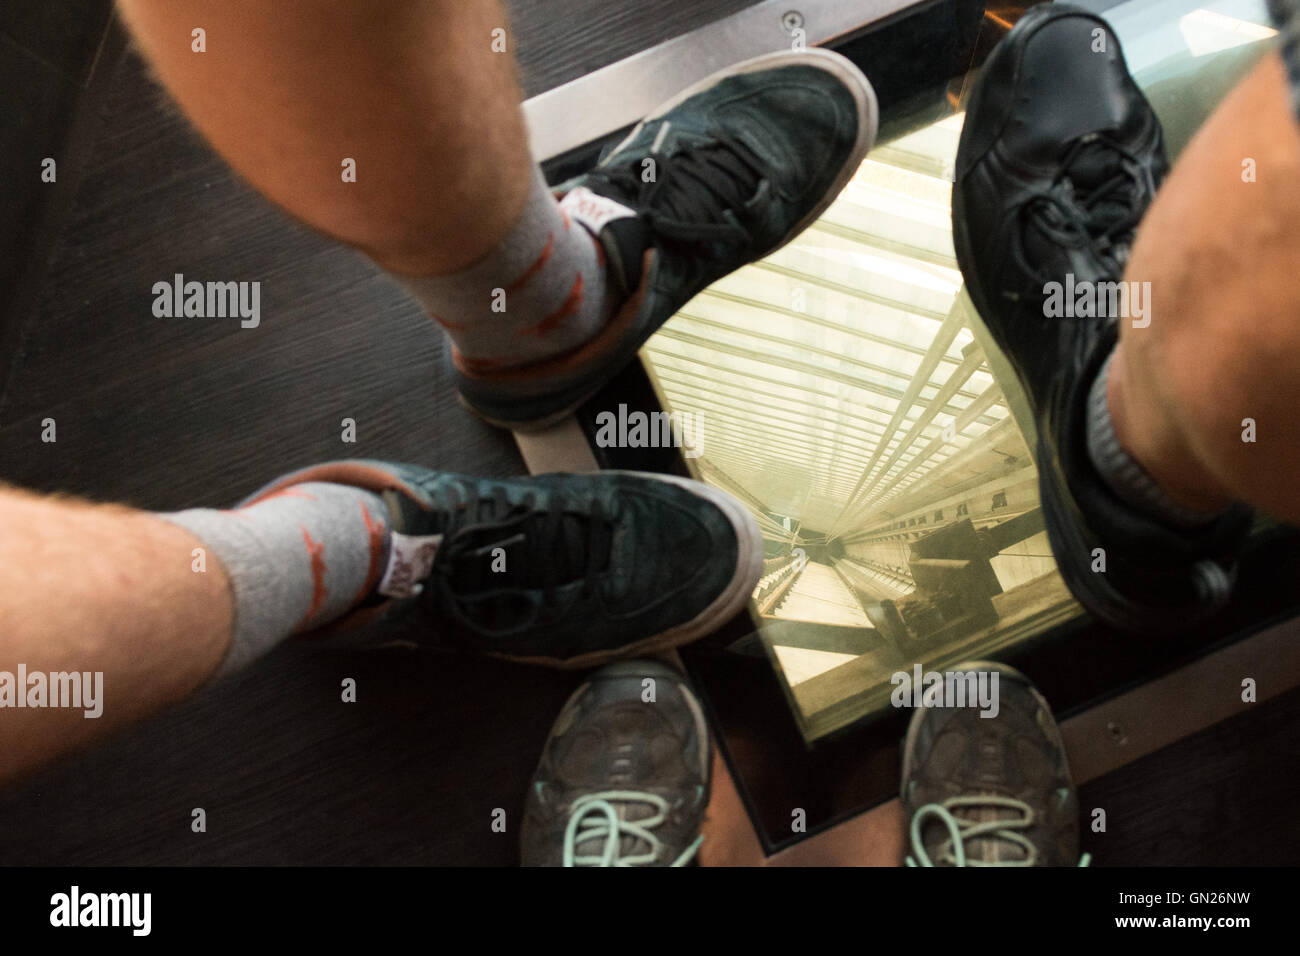 CN Tower, Toronto, Canada - glass window on floor of elevator lift - Stock Image